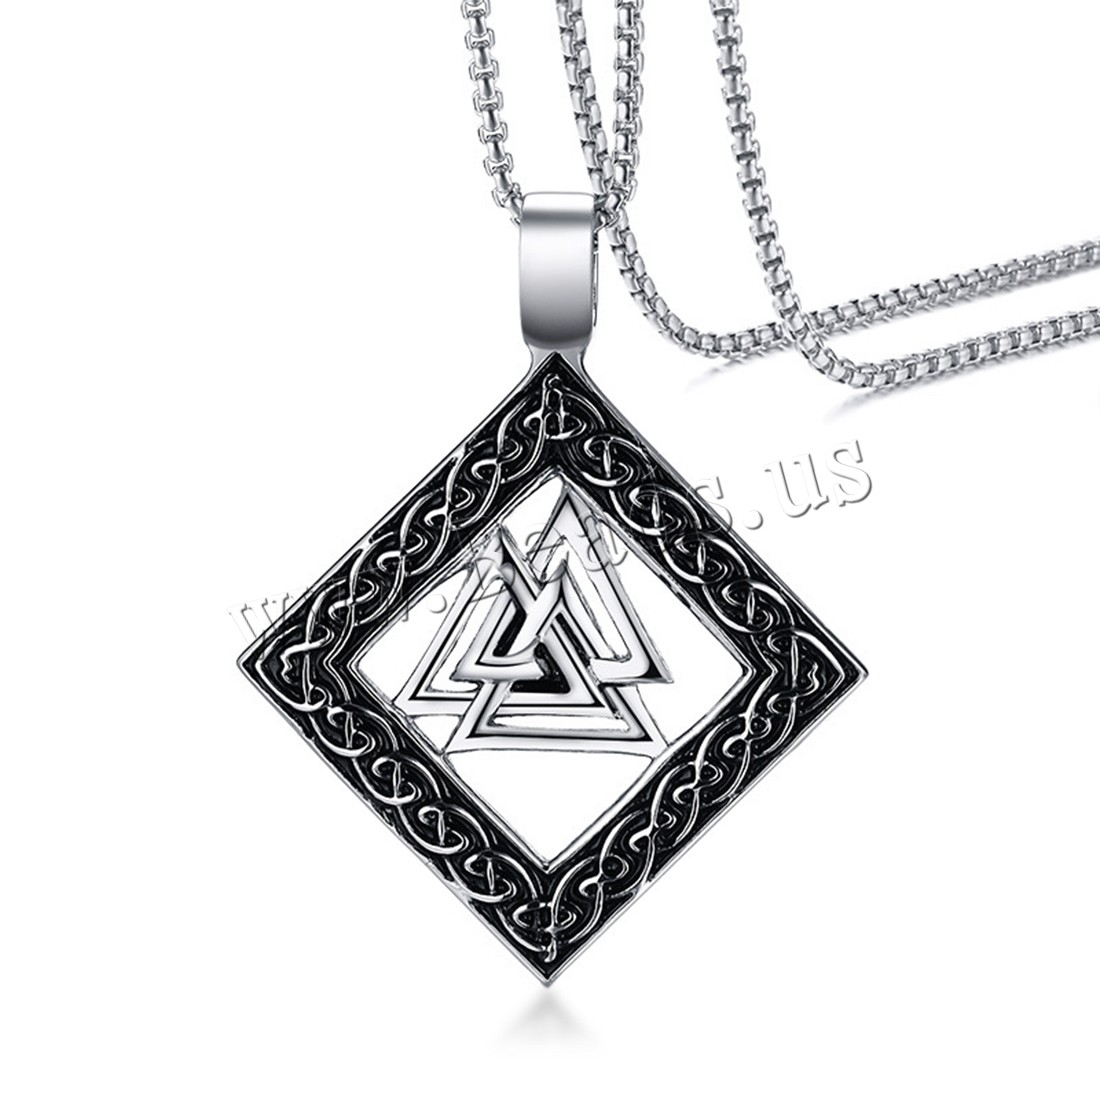 Buy Stainless Steel Sweater Necklace box chain & man & blacken 45x56.5mm Sold Per Approx 23.6 Inch Strand